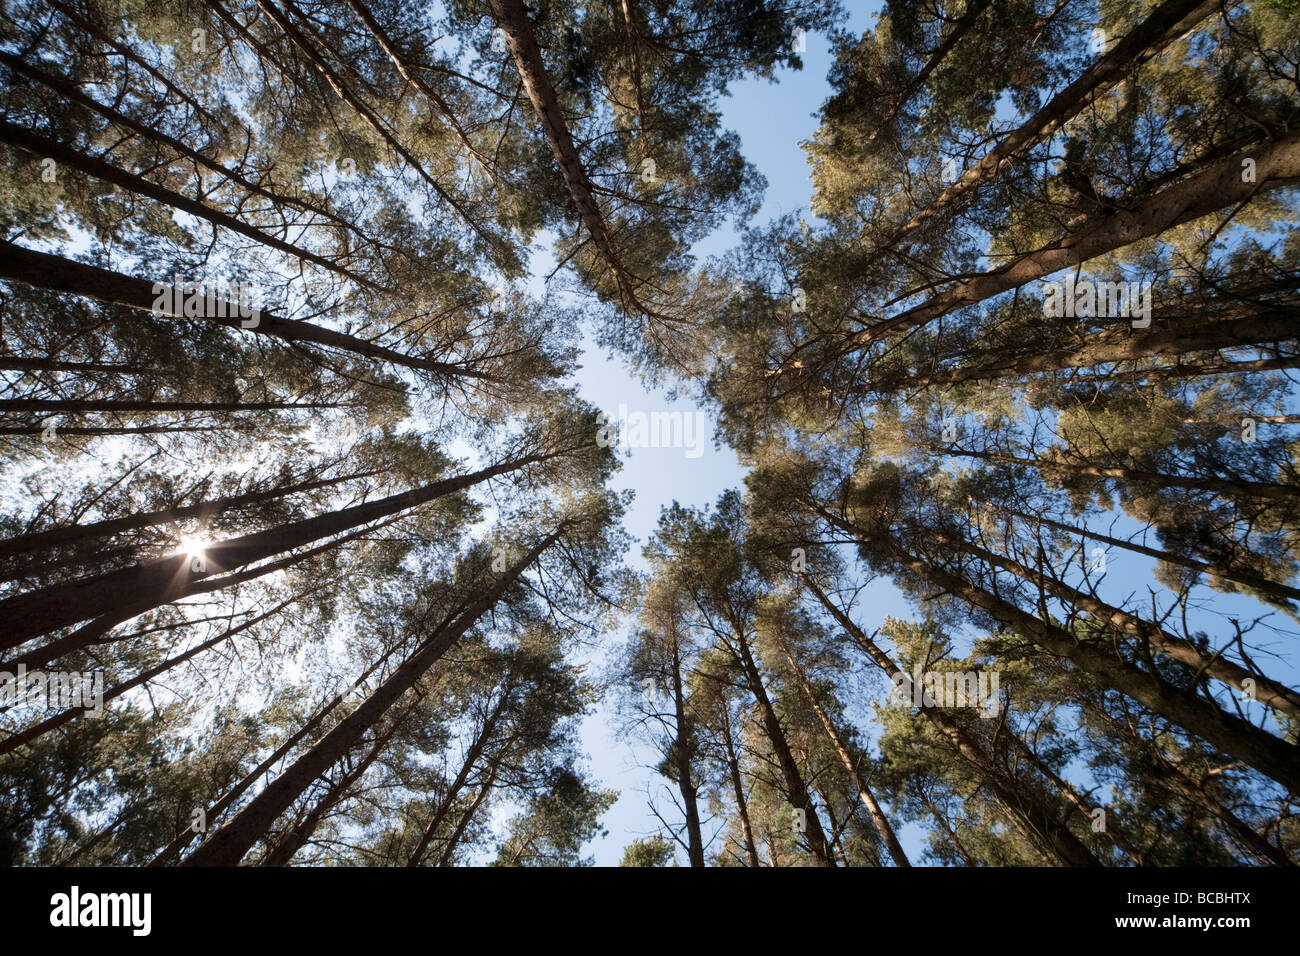 Wide angle view of a pine forest canopy with sunlight shining through. Taken from ground level & Wide angle view of a pine forest canopy with sunlight shining ...